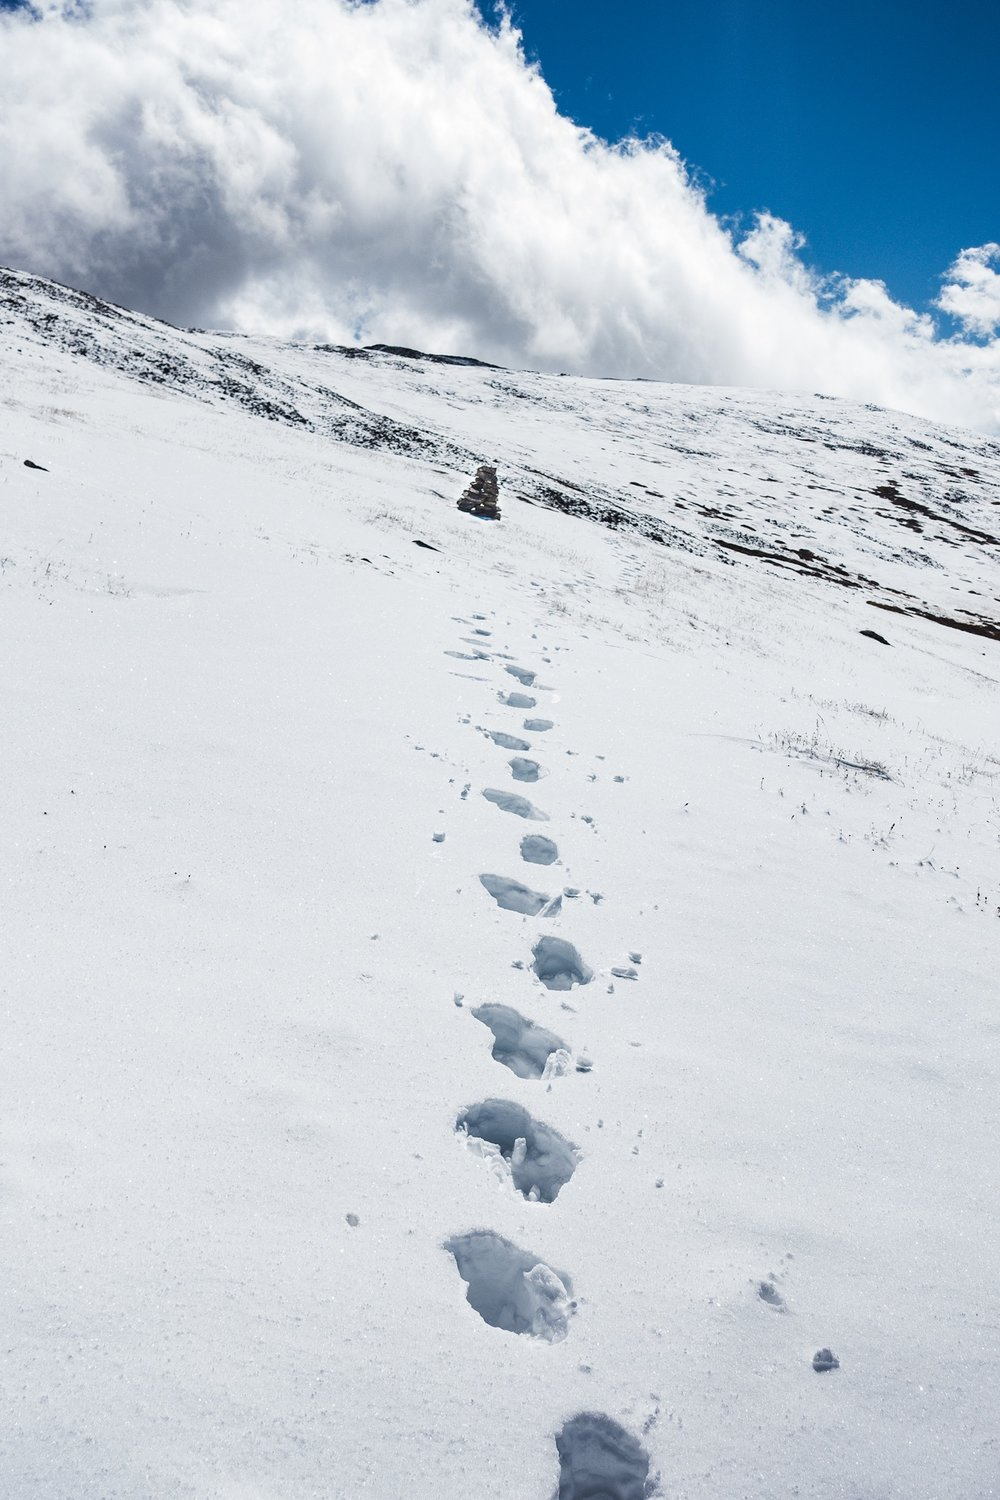 Merlin and Hummingbirds footsteps on the other side of the ridge